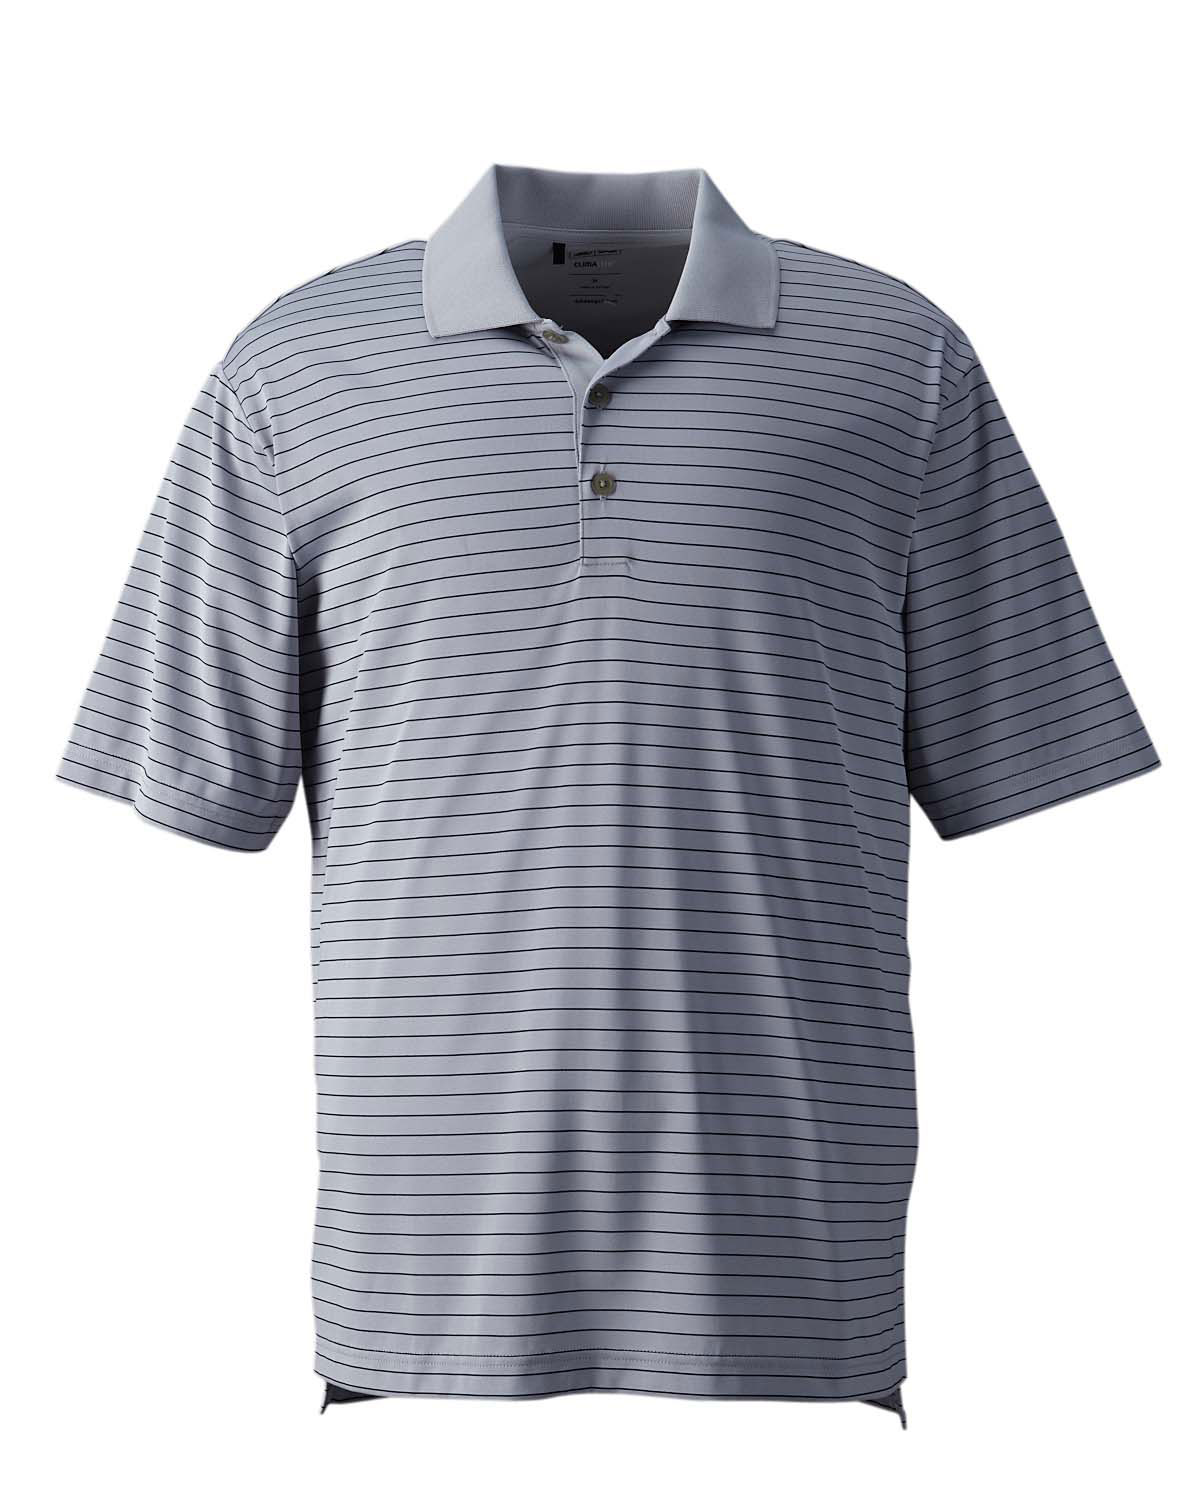 Mens Adidas Golf ClimaLite Pencil Stripe Polo